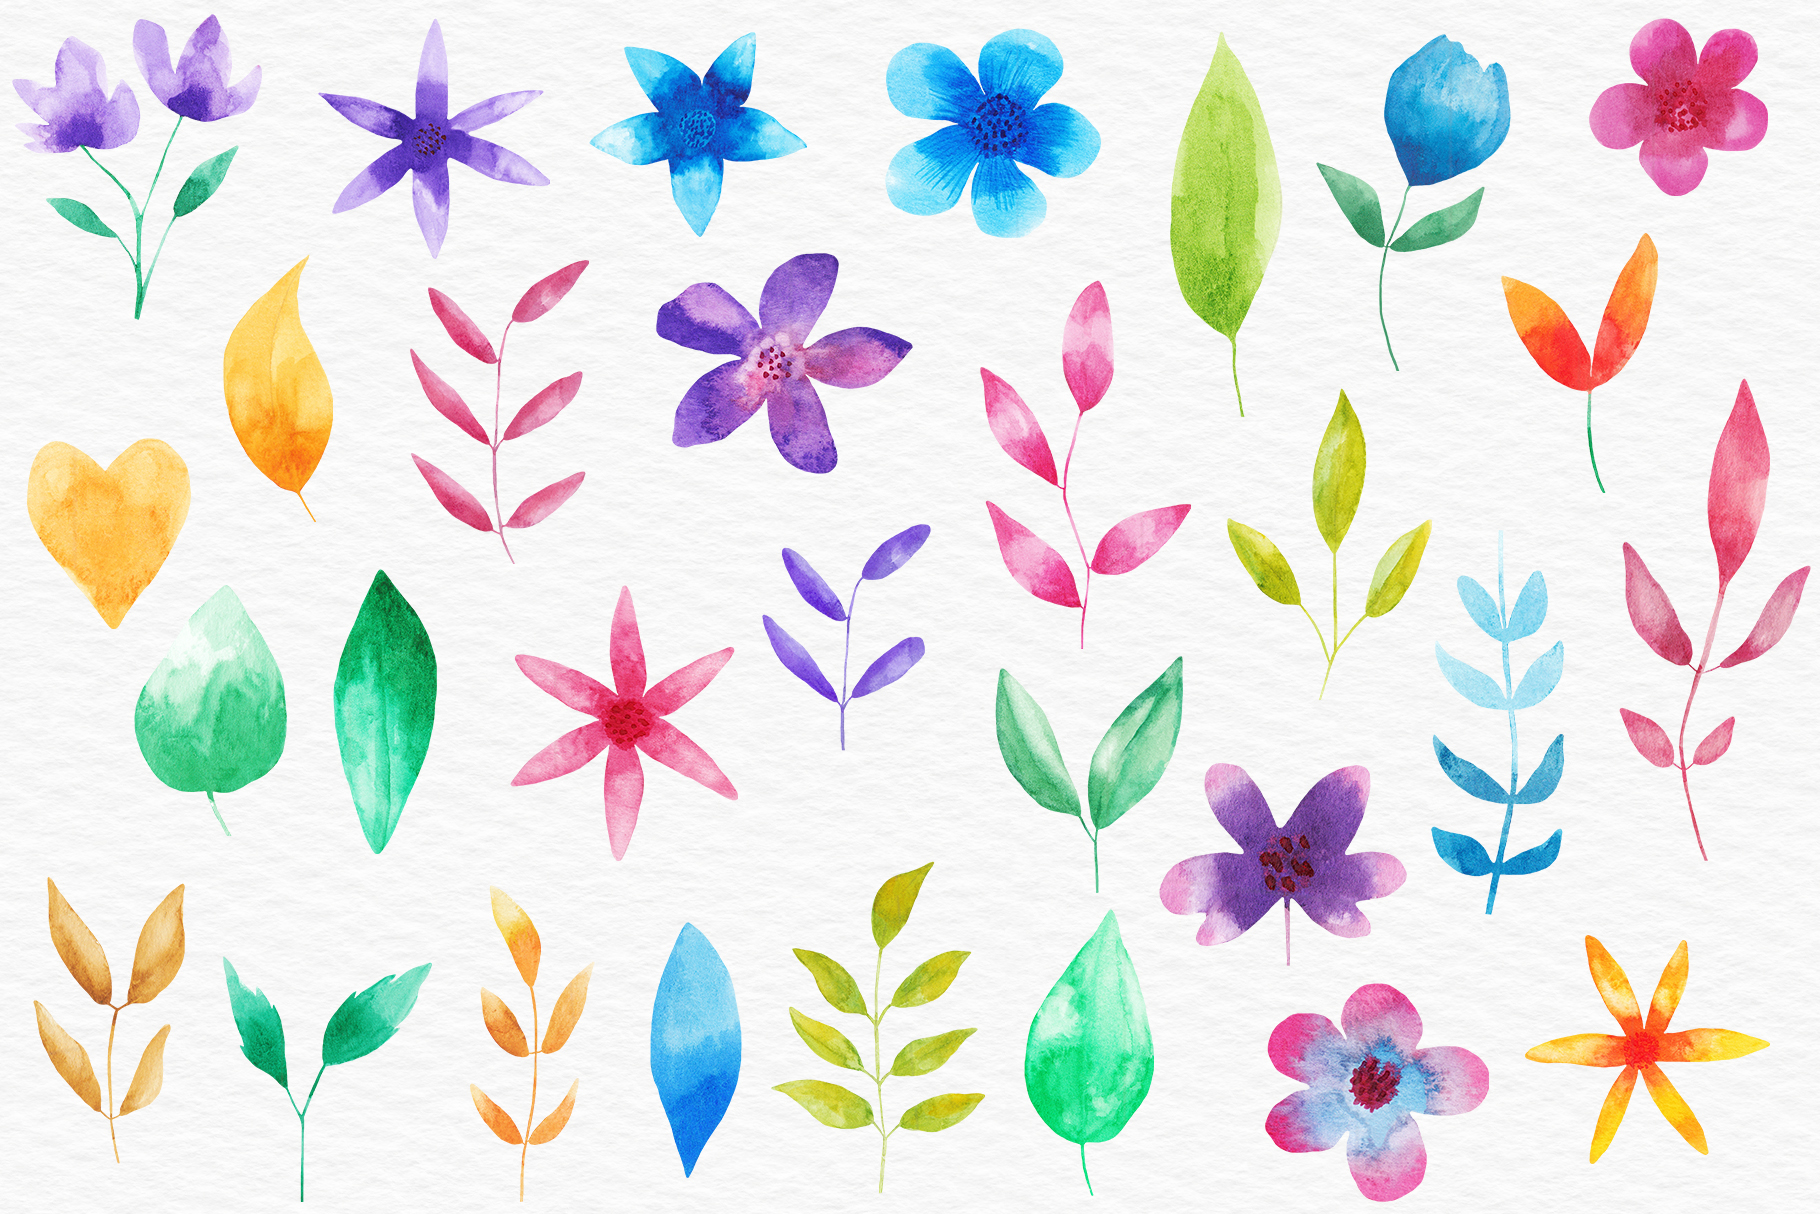 Watercolor Floral Clipart, Watercolor Flowers Illustrations example image 2